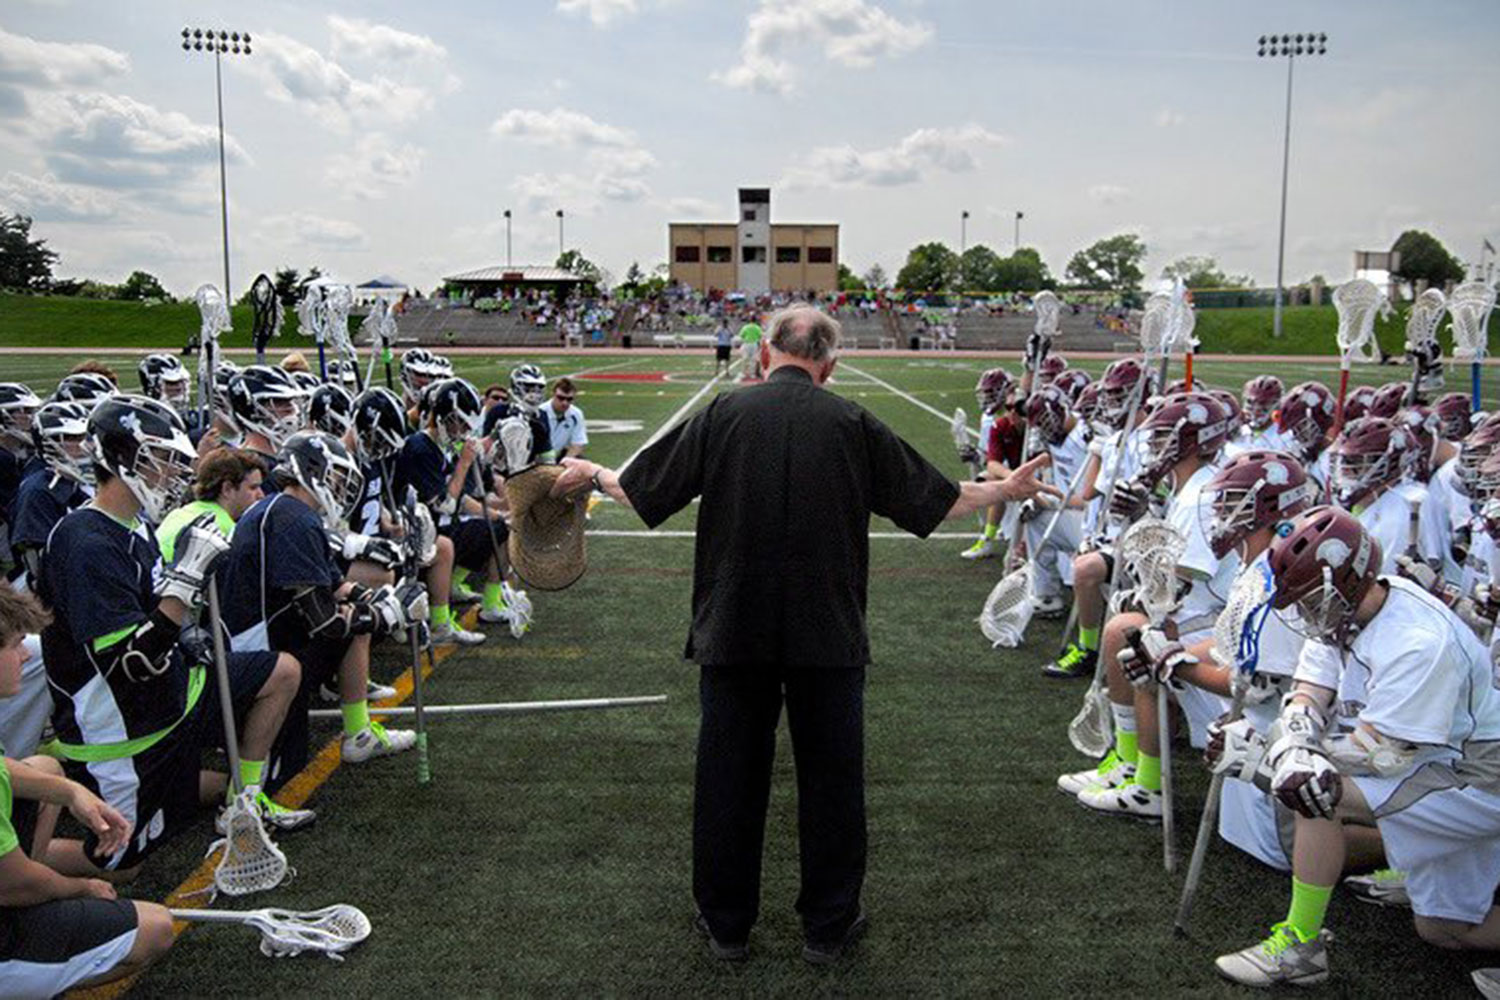 Both De Smet and SLUH's lacrosse teams are blessed before the big game.